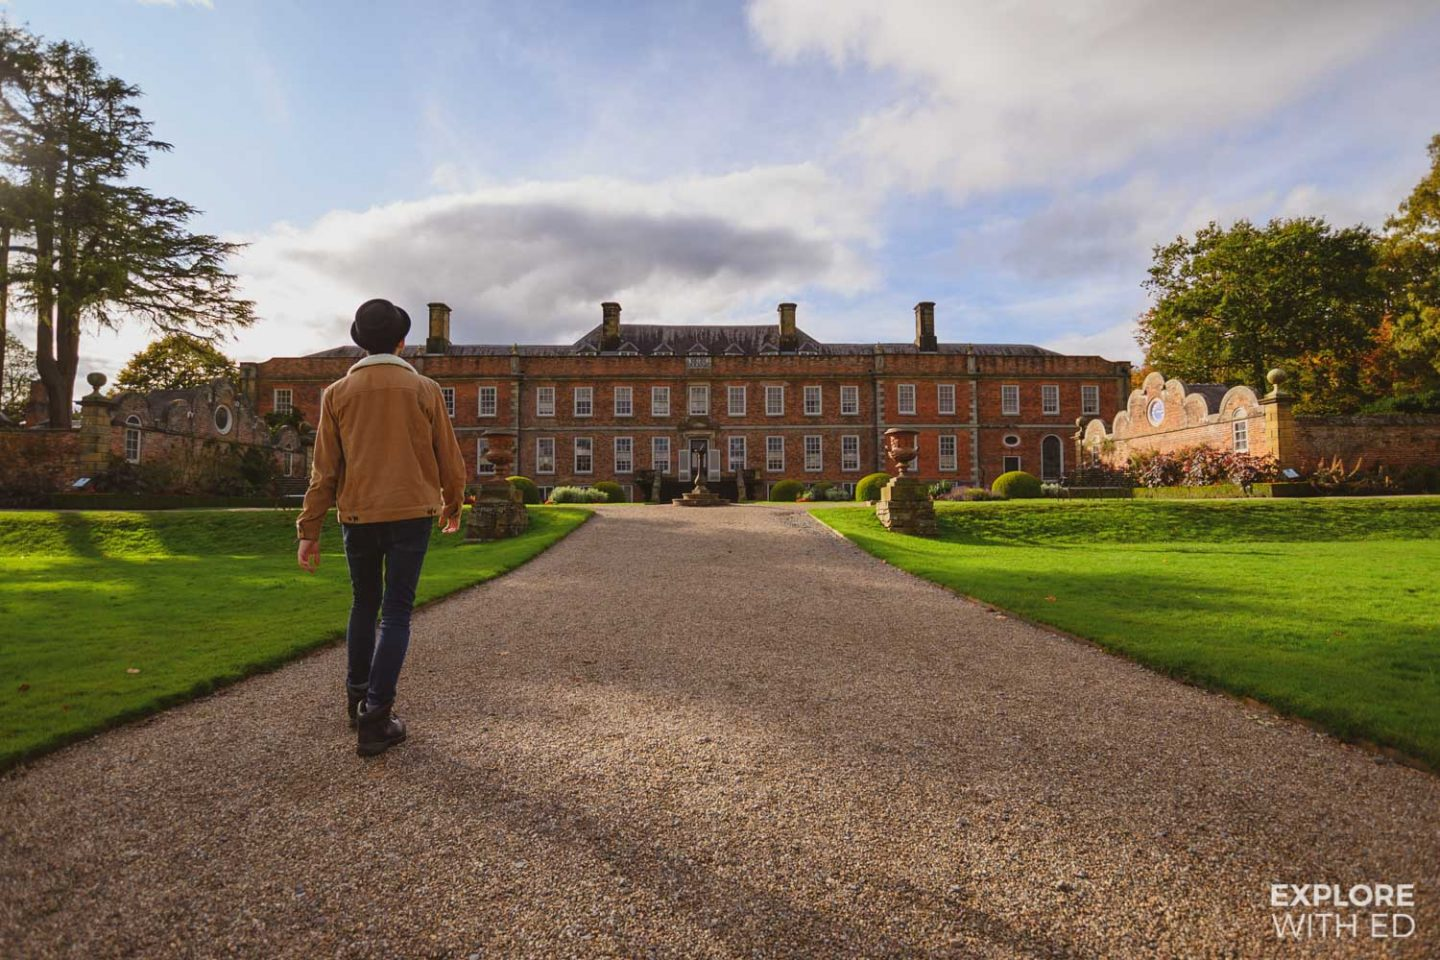 Erddig Hall, one of the top photography spots in Wrexham